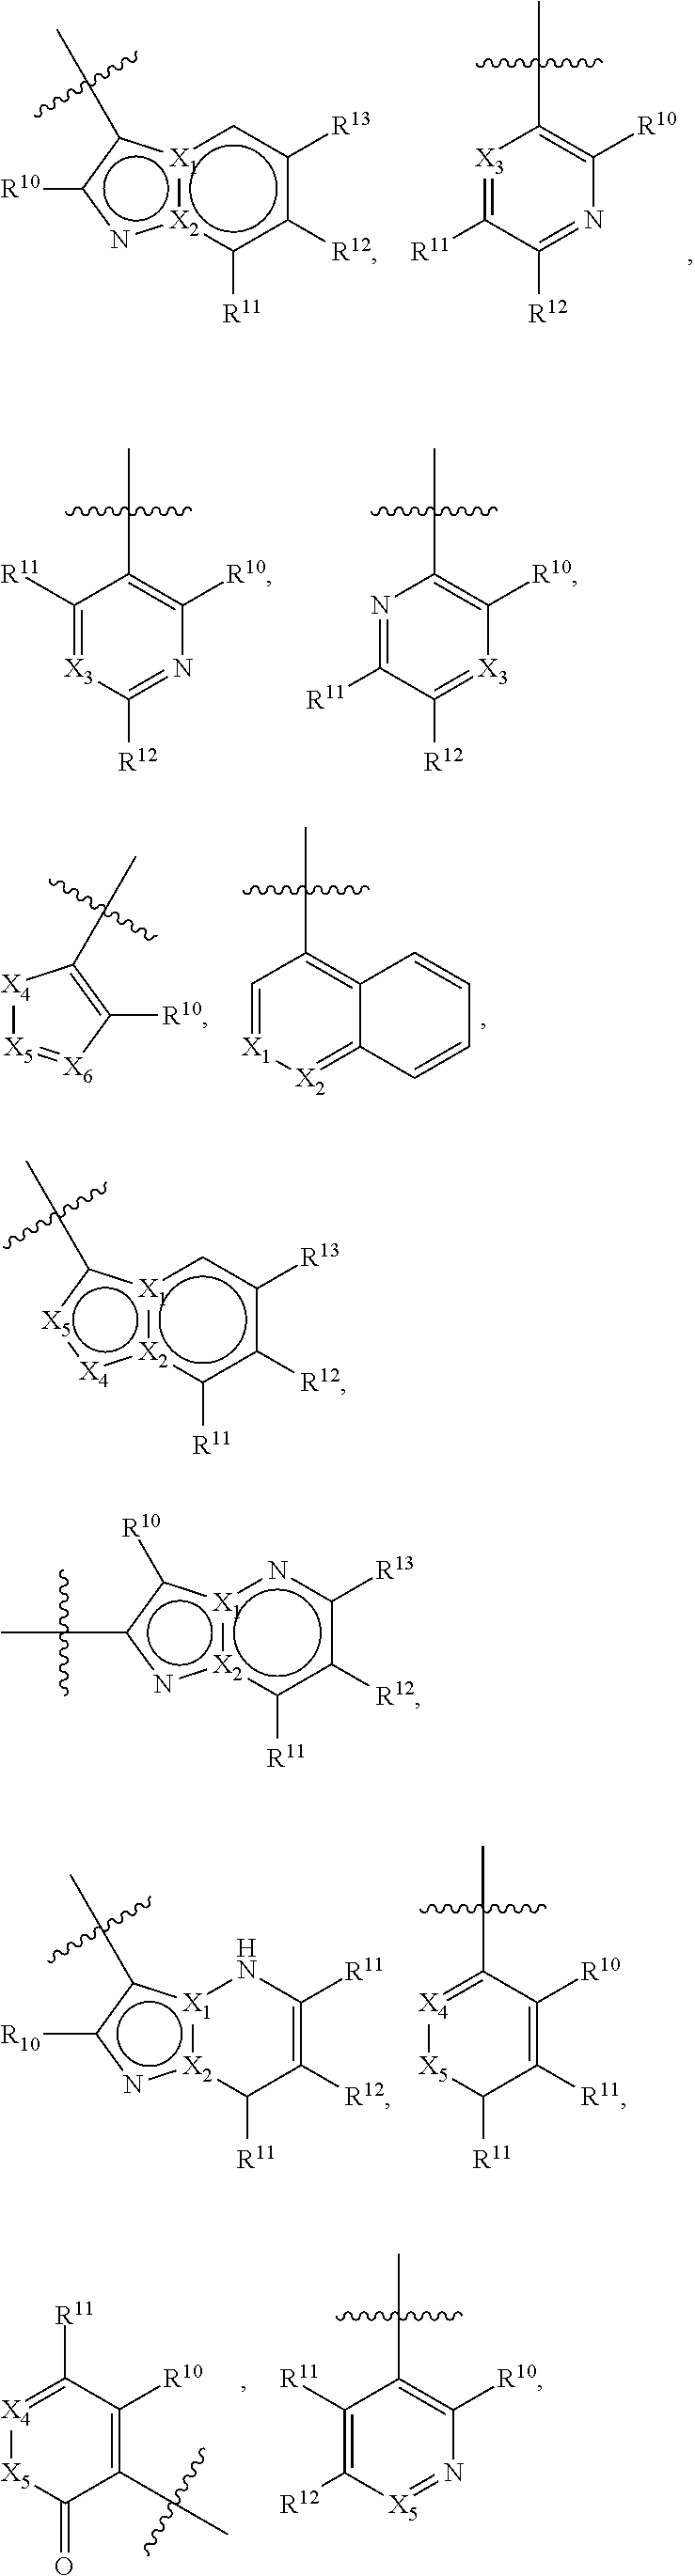 134c3be8b40c US9751888B2 - Heterocyclic compounds and uses thereof - Google Patents